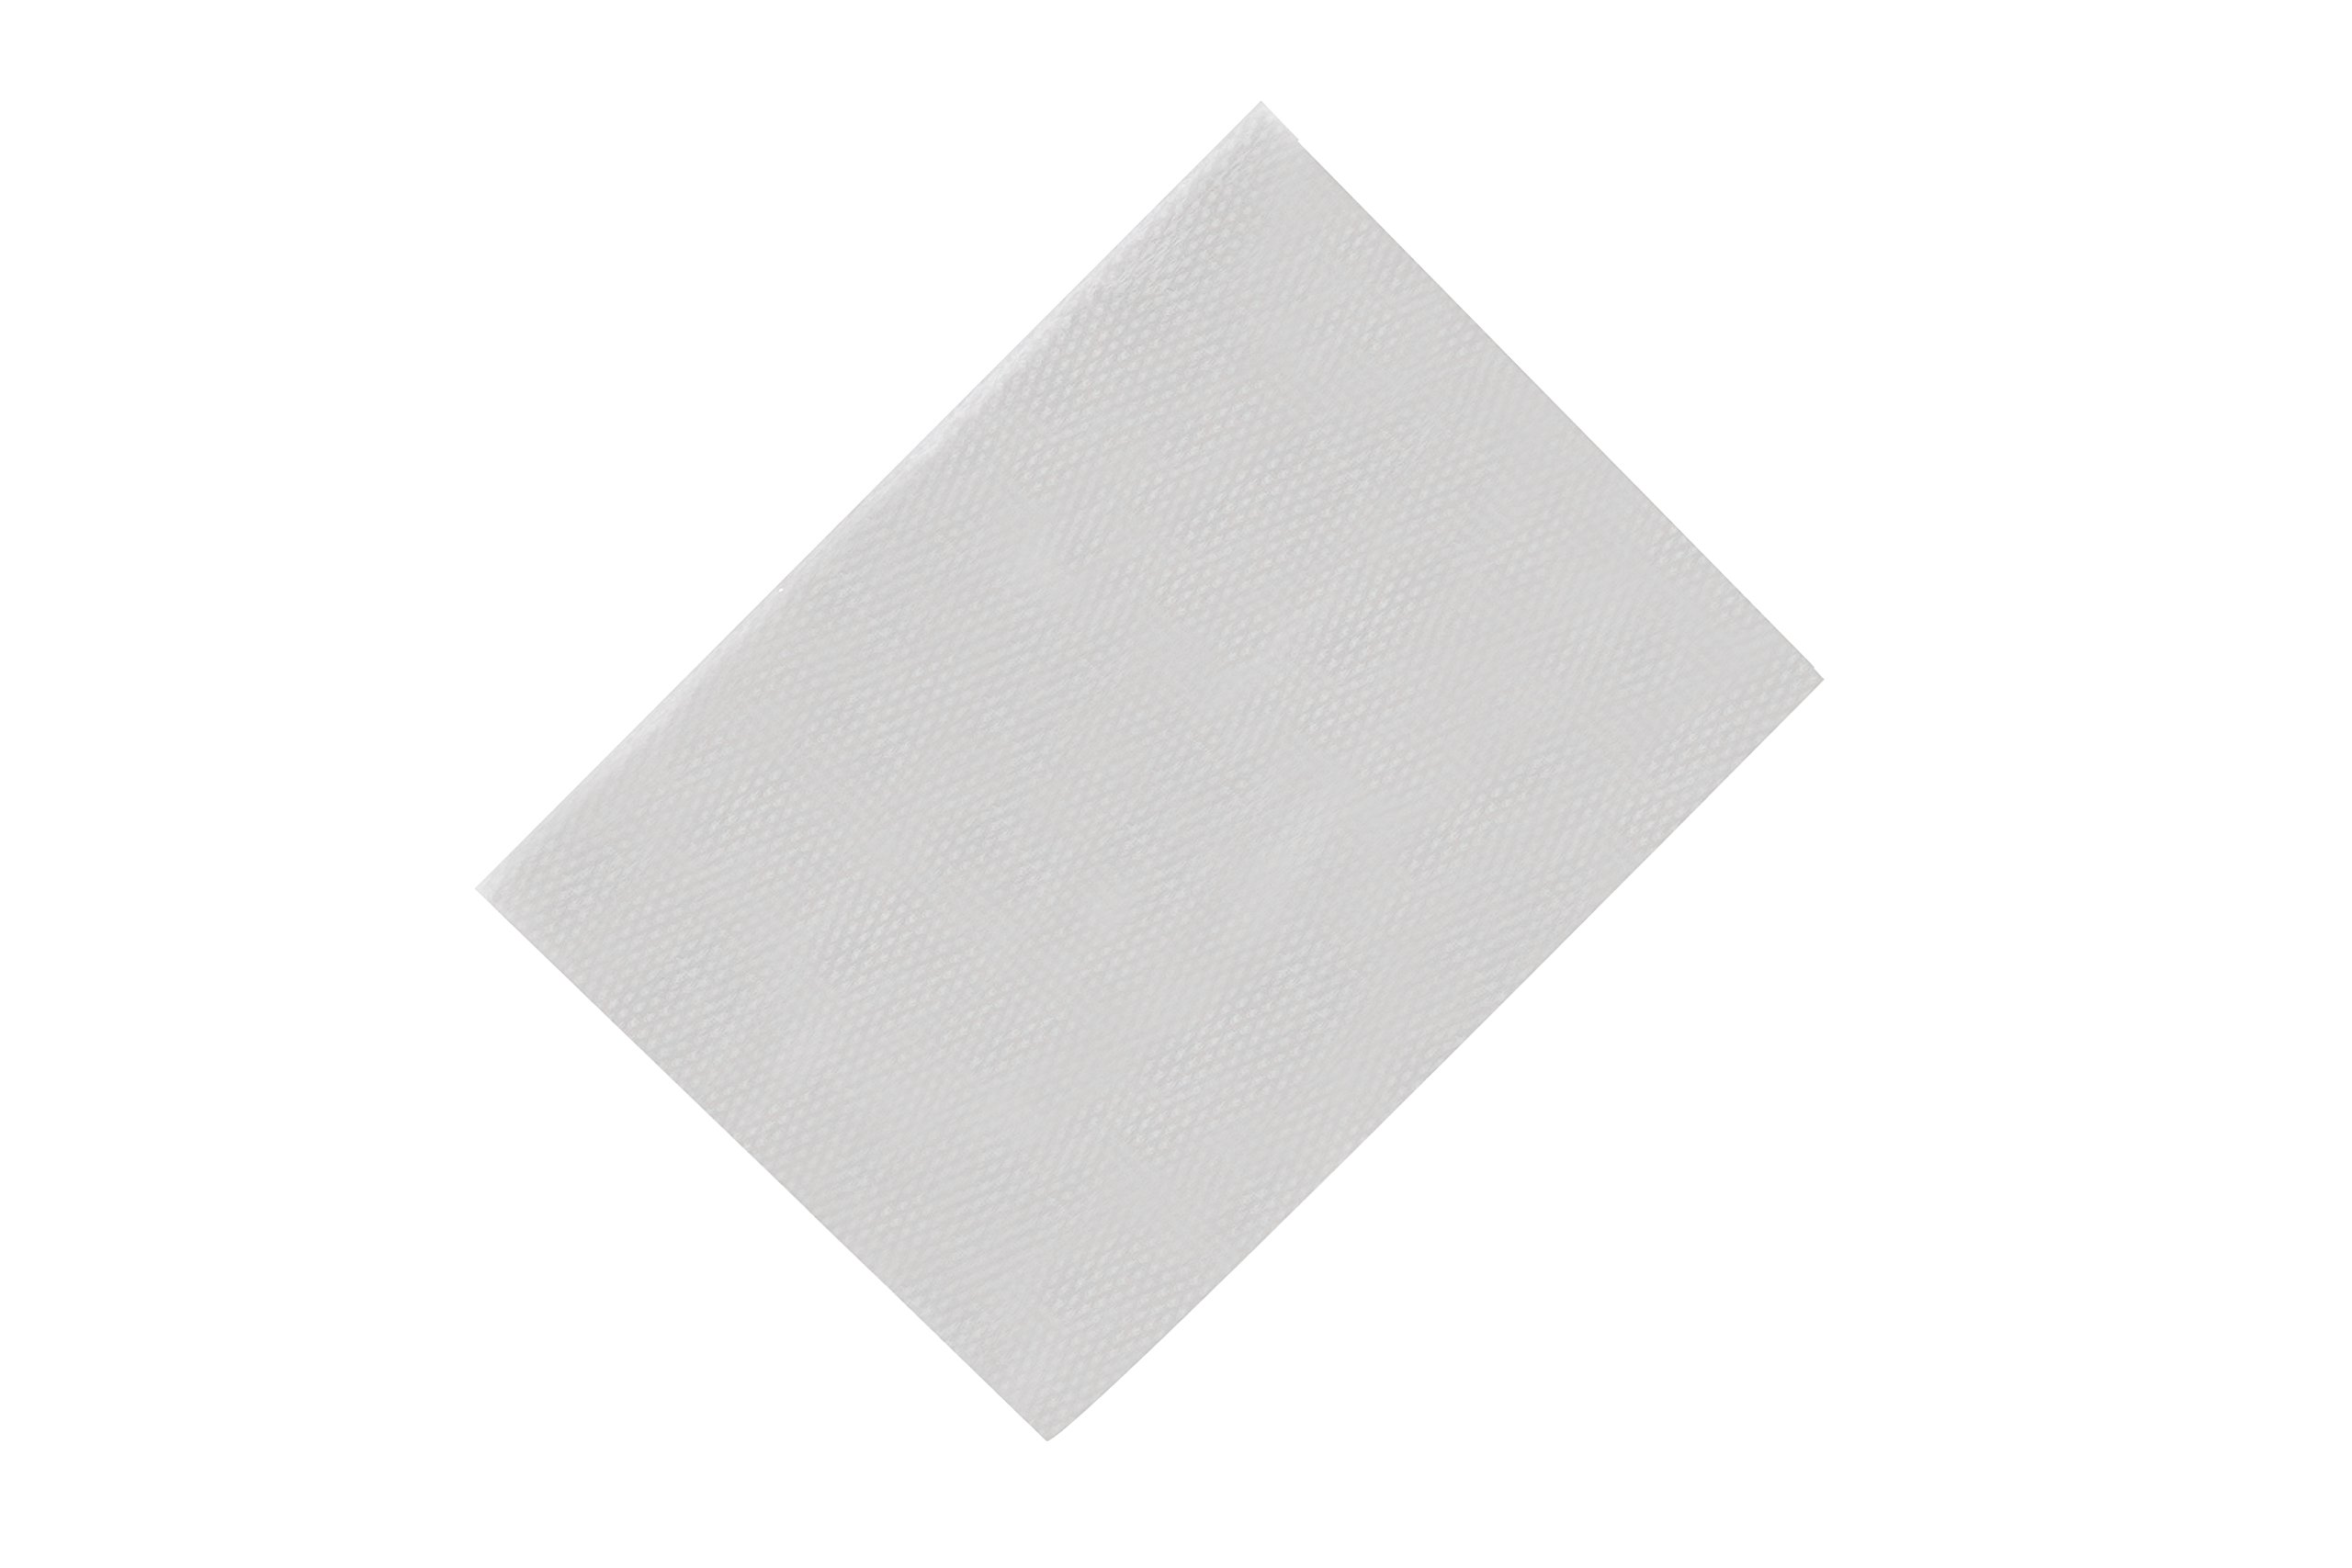 American White Cross 7590000 Sterile Non Adherent Pad, 2'' x 3'', 3600/Case (Pack of 3600)